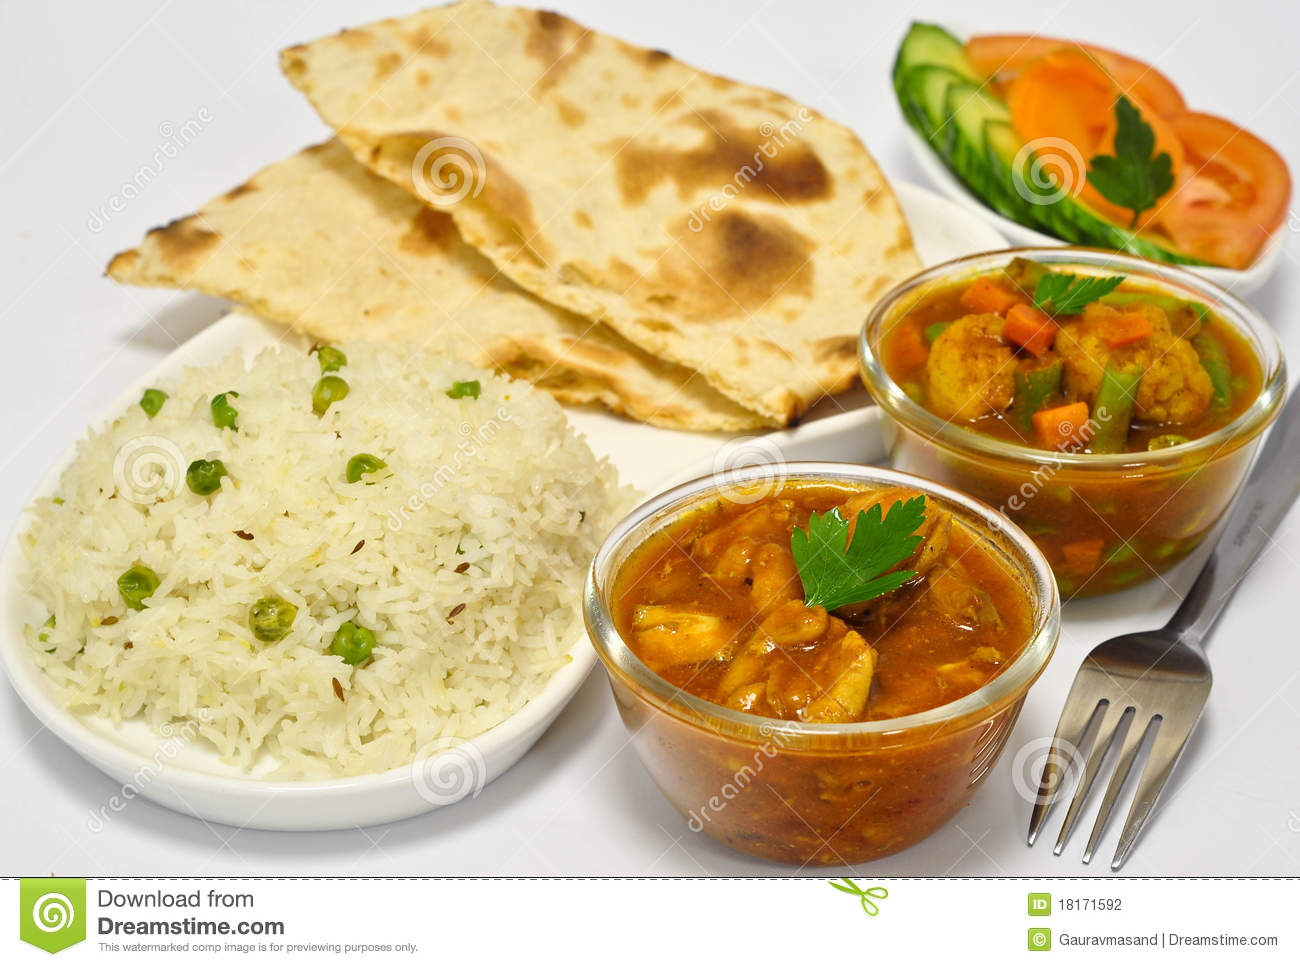 Indian meal consisting of chicken curry as the main dish, along with